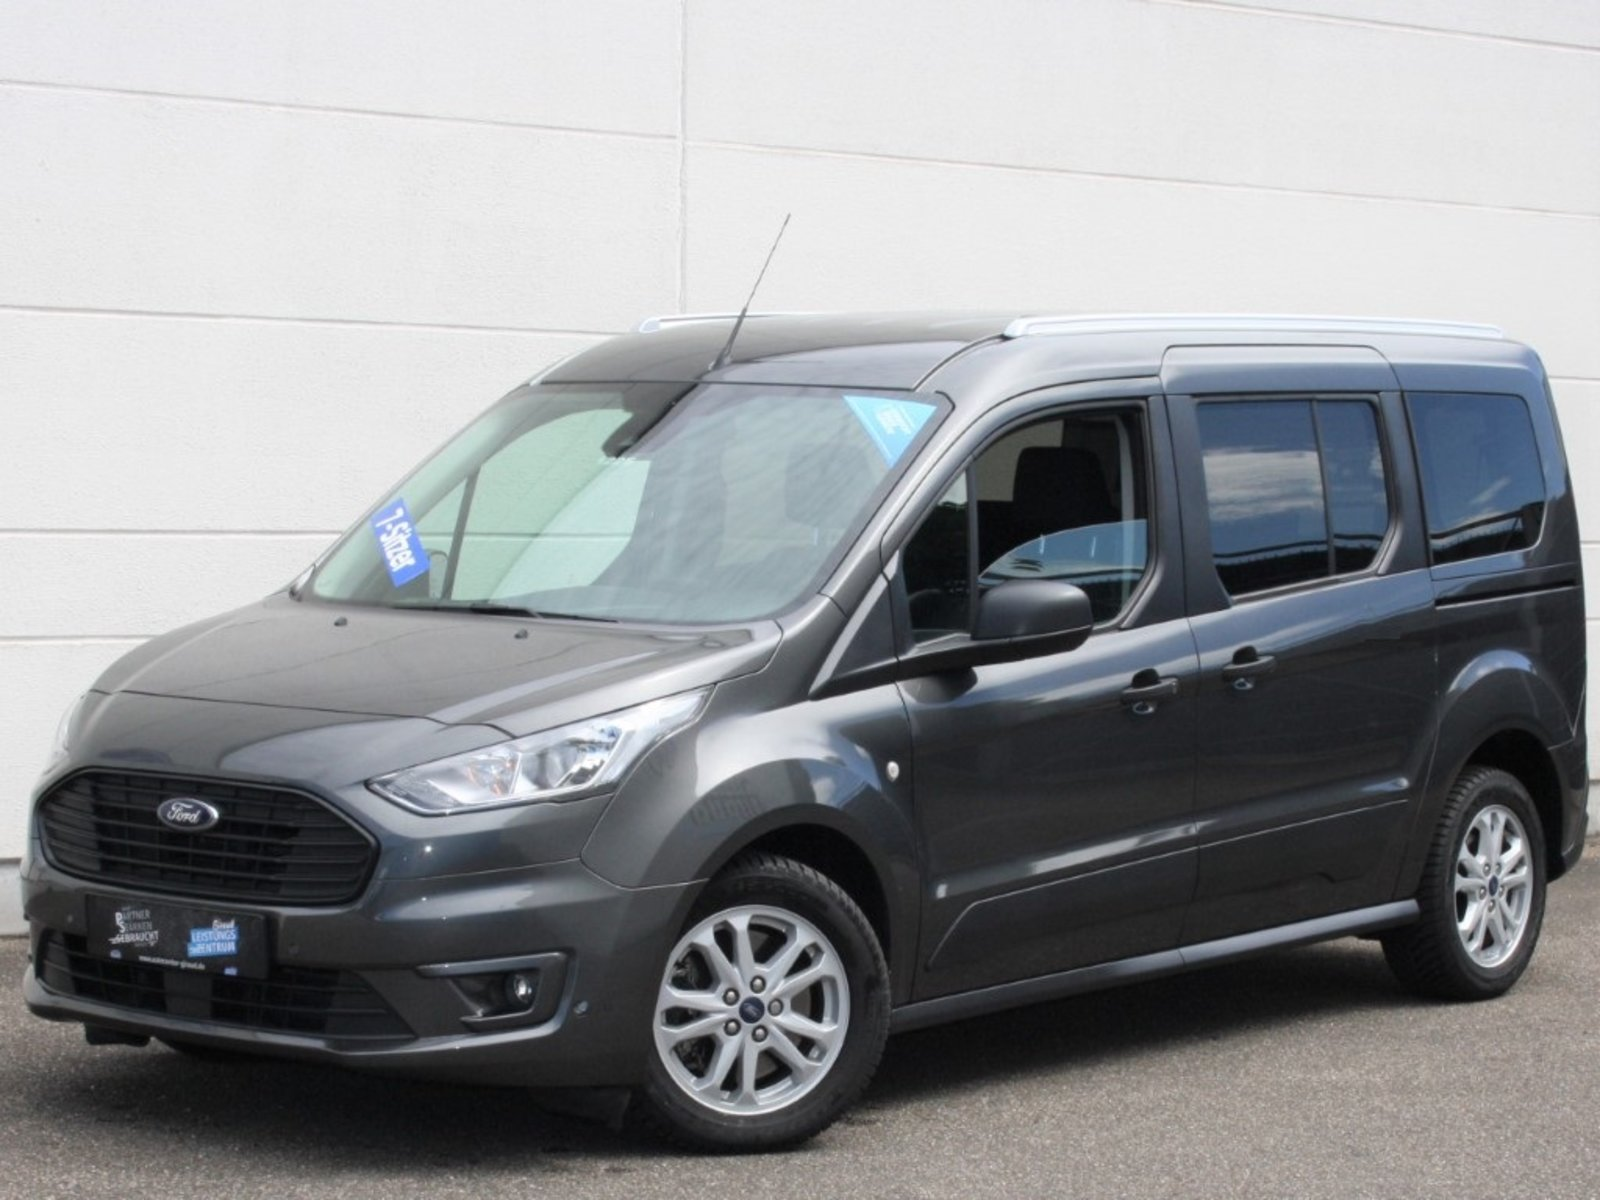 Ford Grand Tourneo Connect 1.5 Trend Navi Kamera, Jahr 2019, Diesel